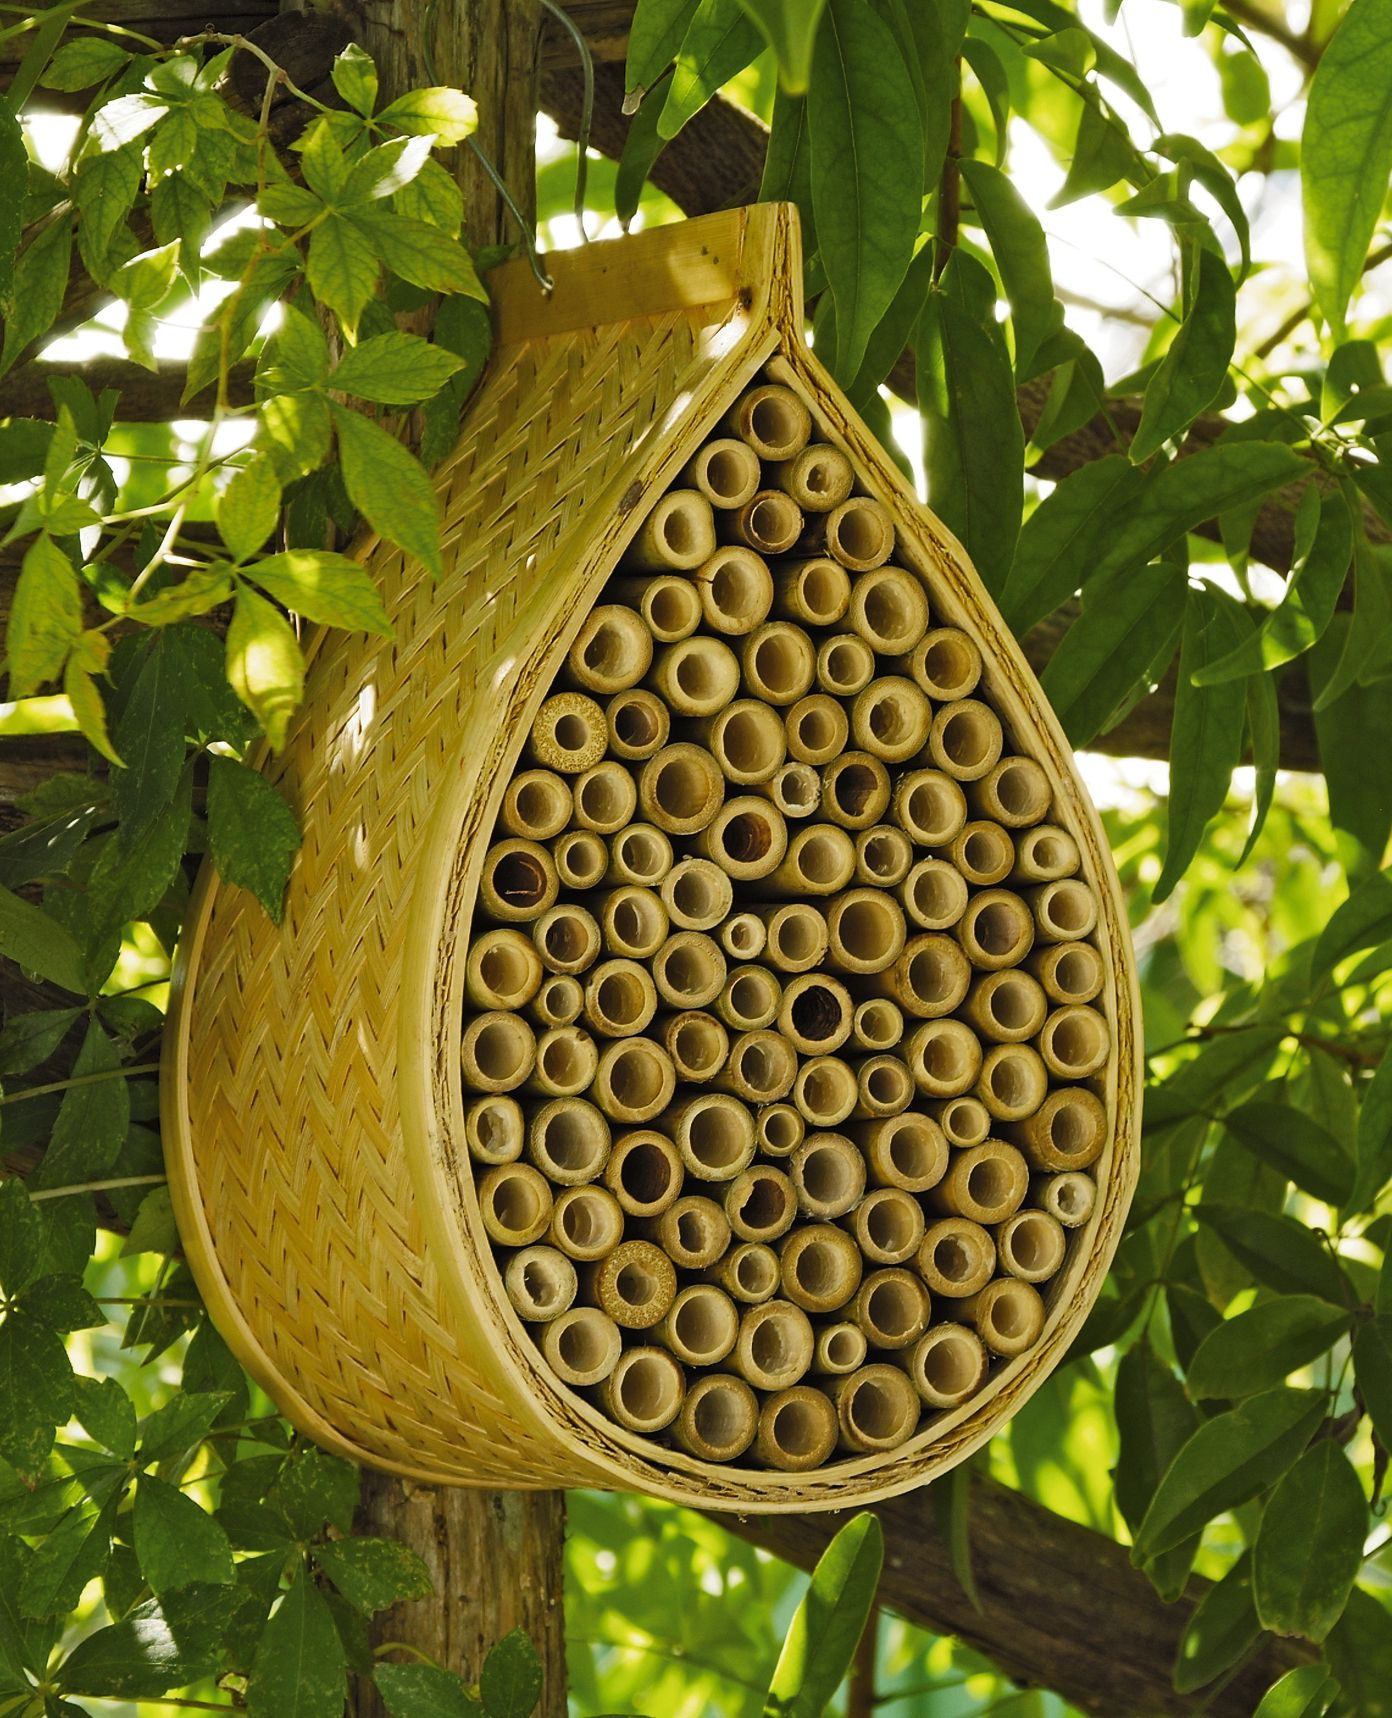 Mason bees don't sting, don't swarm, and don't make honey. But they *do* pollinate plants way better than regular bees. Put up a mason bee house, order some bees, and enjoy your harvest.